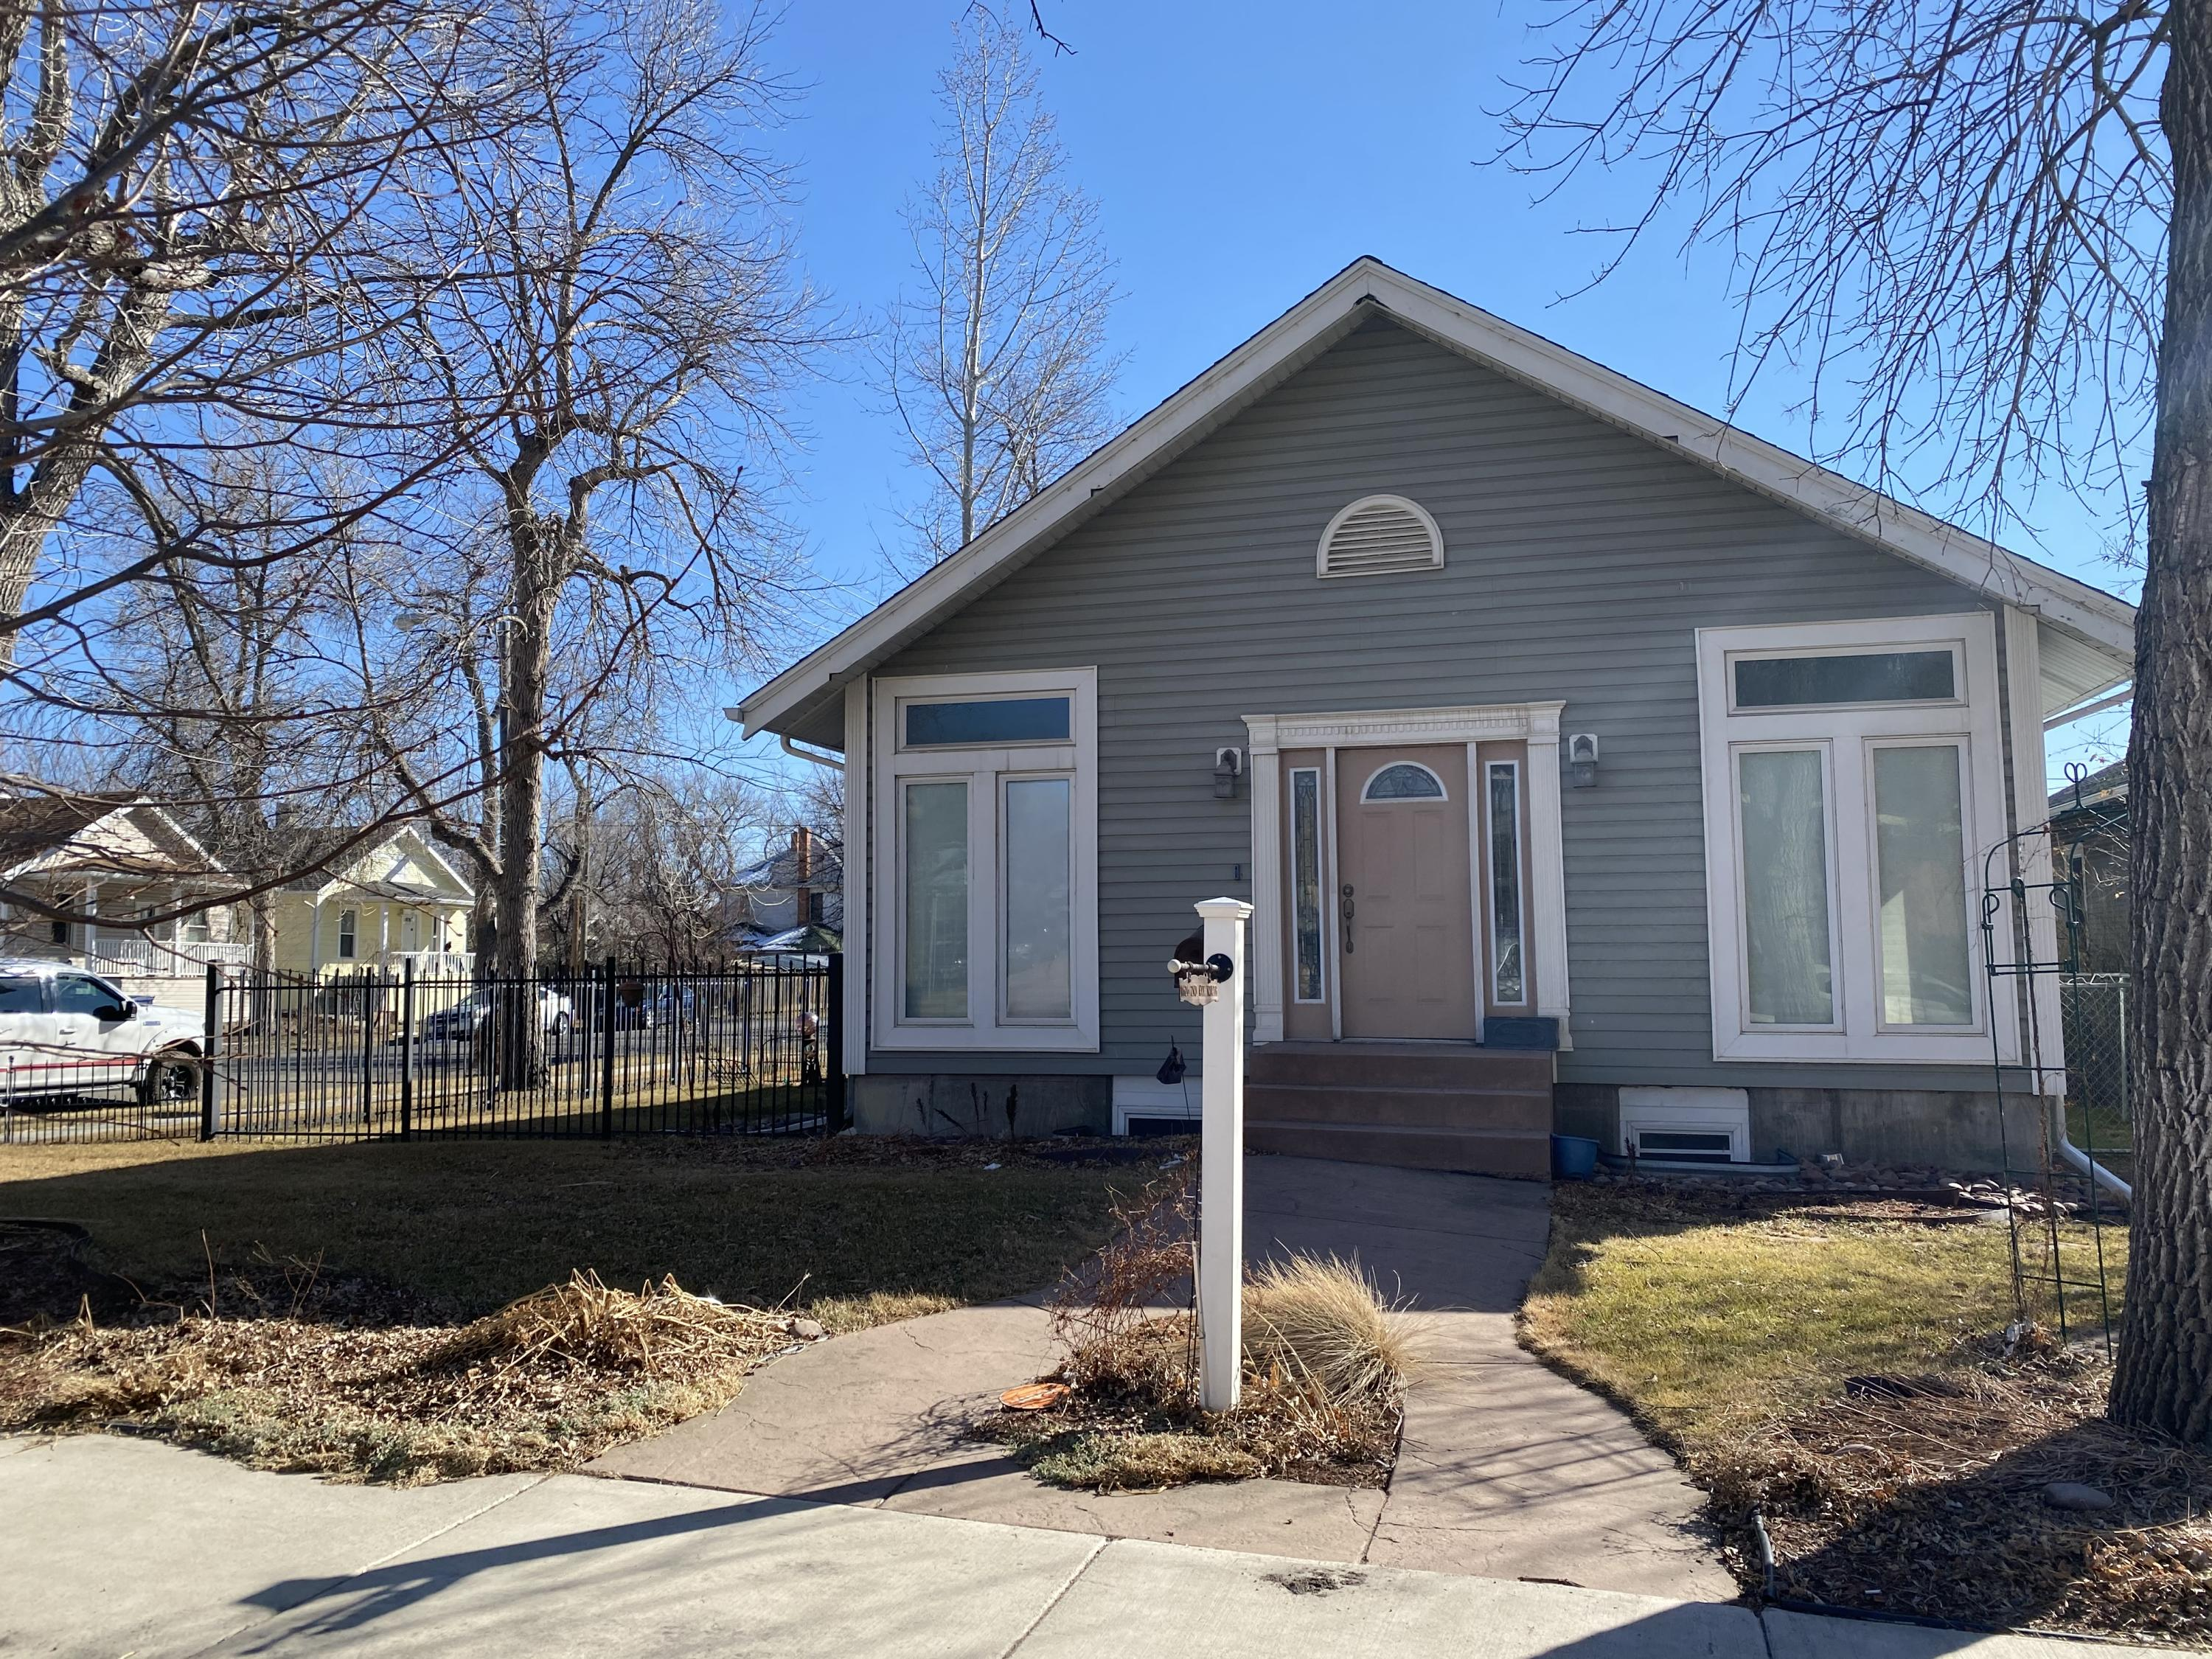 Check out this ranch style home on small lot.  Features open floor concept from living room to kitchen, large windows to let in light some hardwood floors. Partially finished basement with 2 bedrooms and a bath with jetted tub and laundry.  Large area to make your own family  room. Garage is mainly good for storage.  Seller is selling as is will not go FHA/VA.  Call Tracy Johnson at 406-788-0443, or your real estate professional.